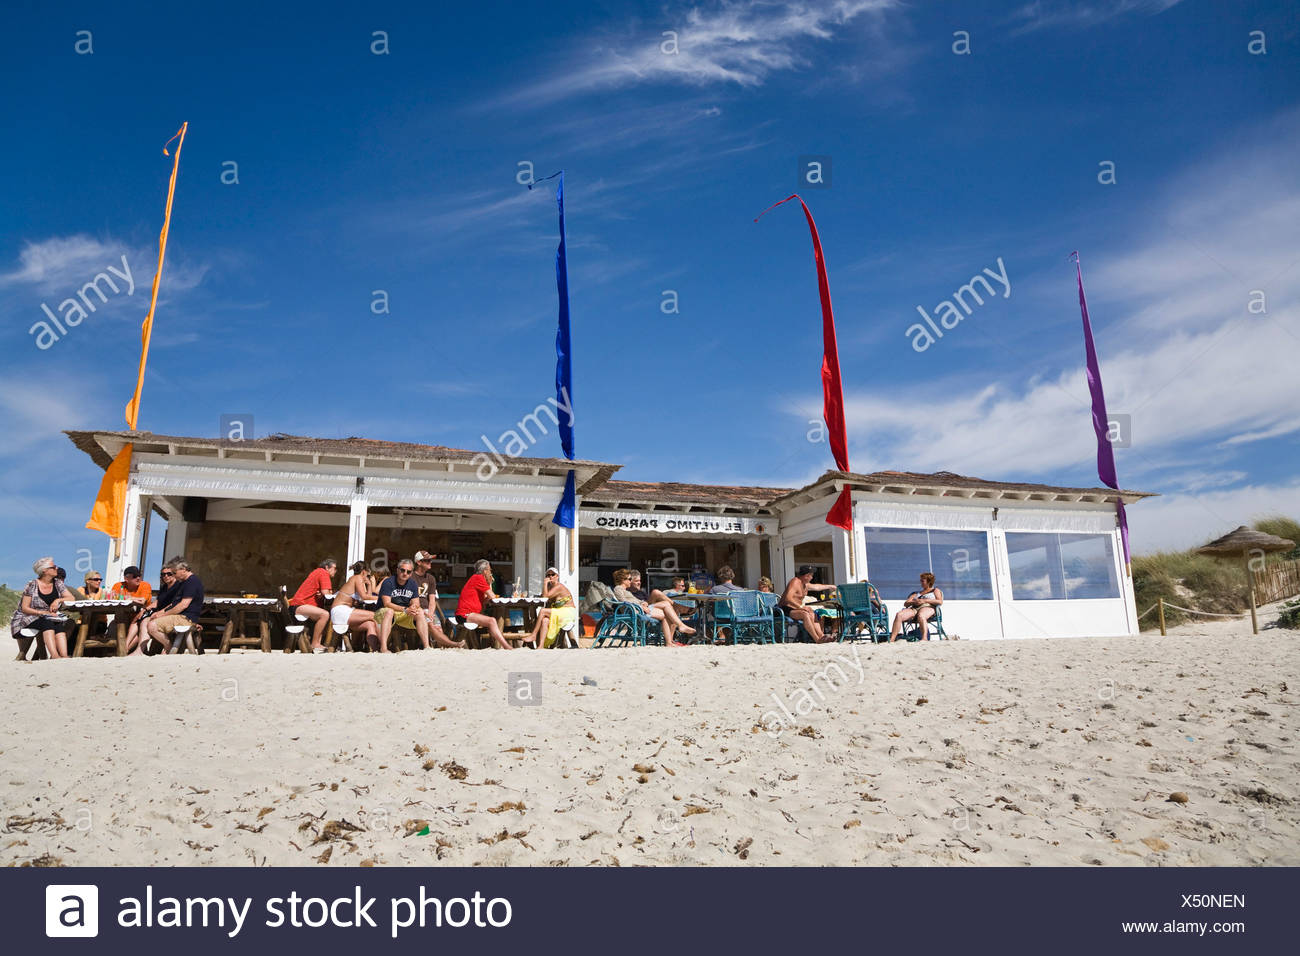 People siting in front of a beach bar at the beach of Es Trenc, Mallorca, Majorca, Balearic Islands, Spain, Europe - Stock Image